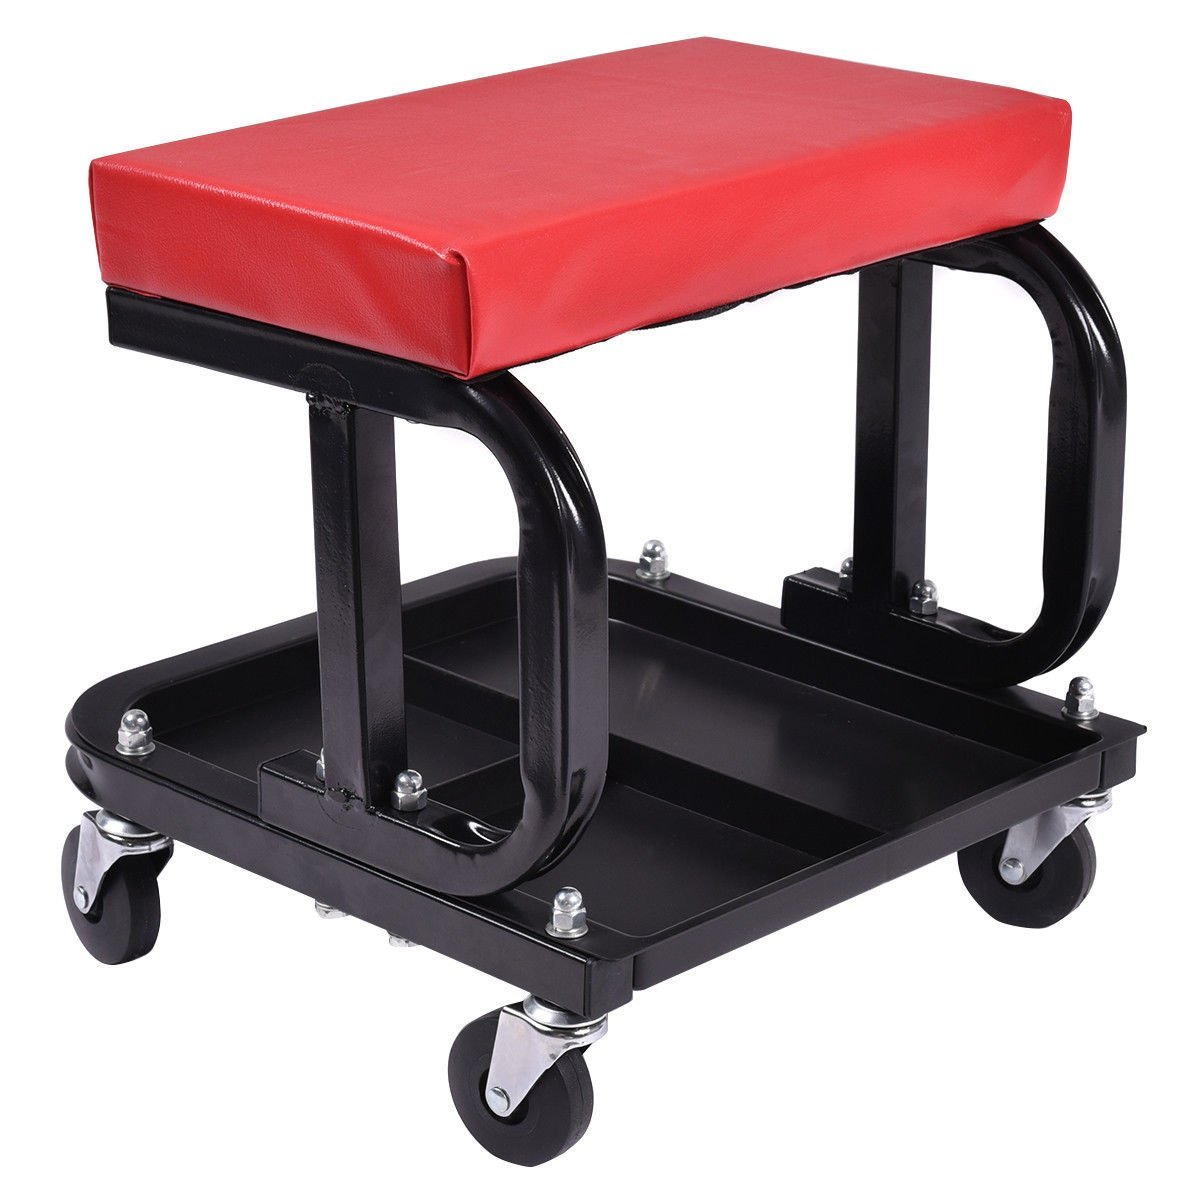 Get Quotations Rolling Creeper Seat Mechanic Stool Chair Repair Tools Tray Shop Auto Car Garage